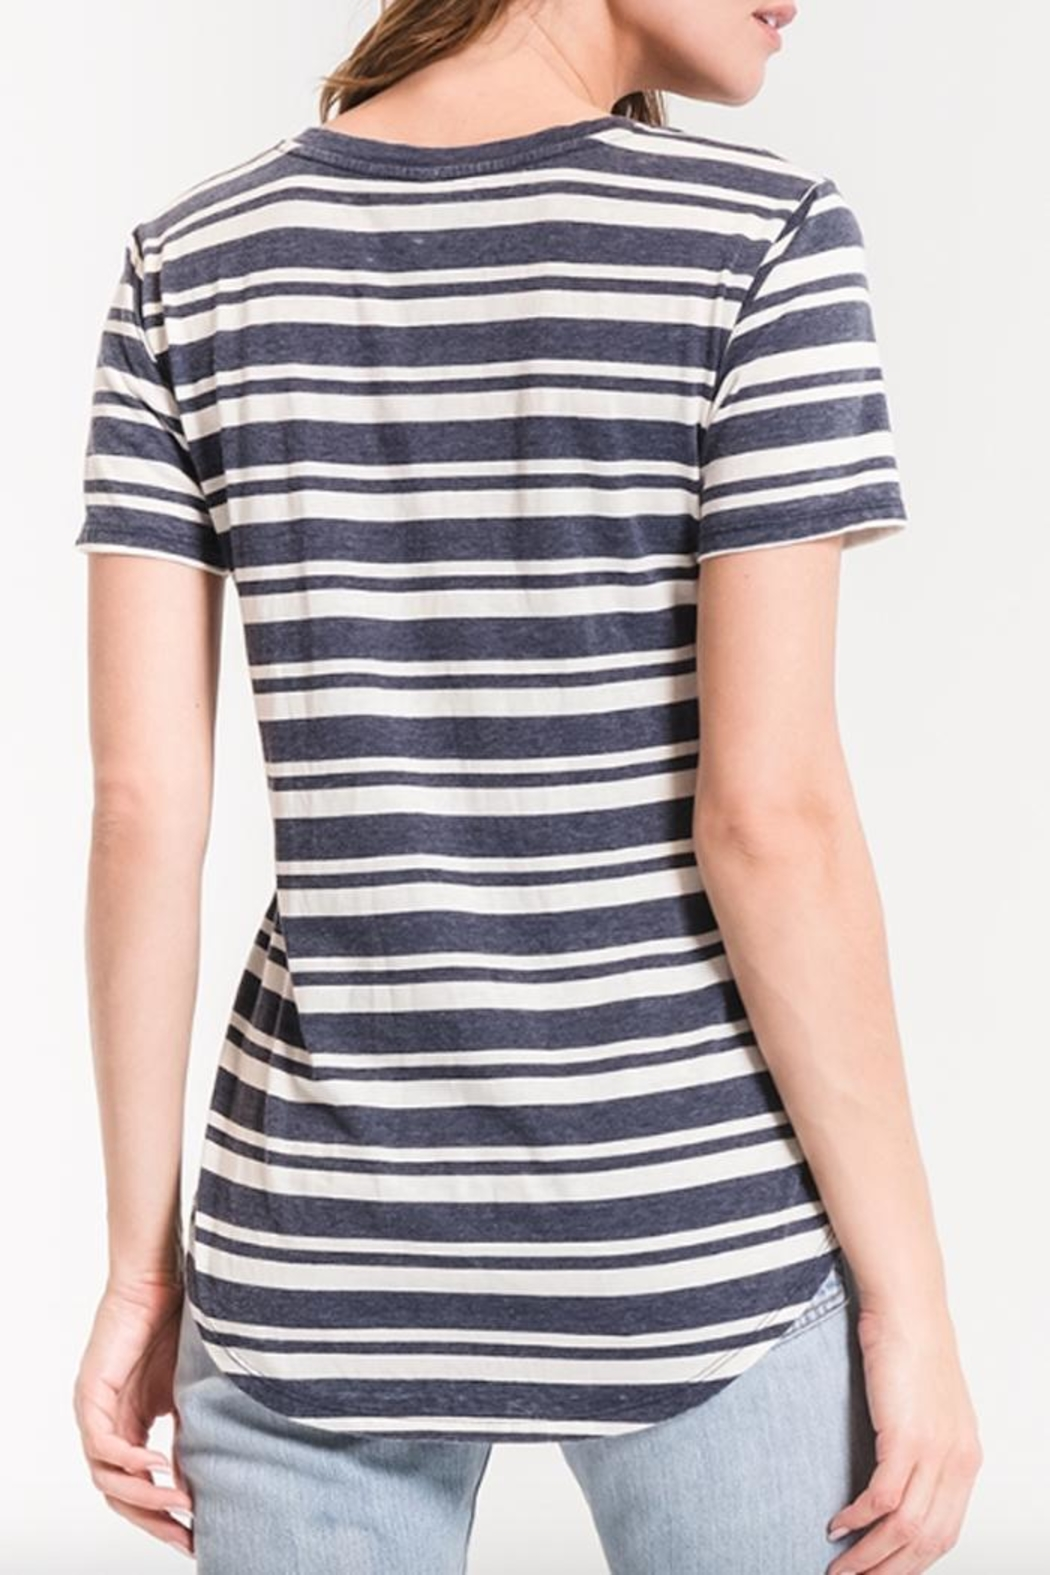 z supply Striped V-Neck Tee - Back Cropped Image